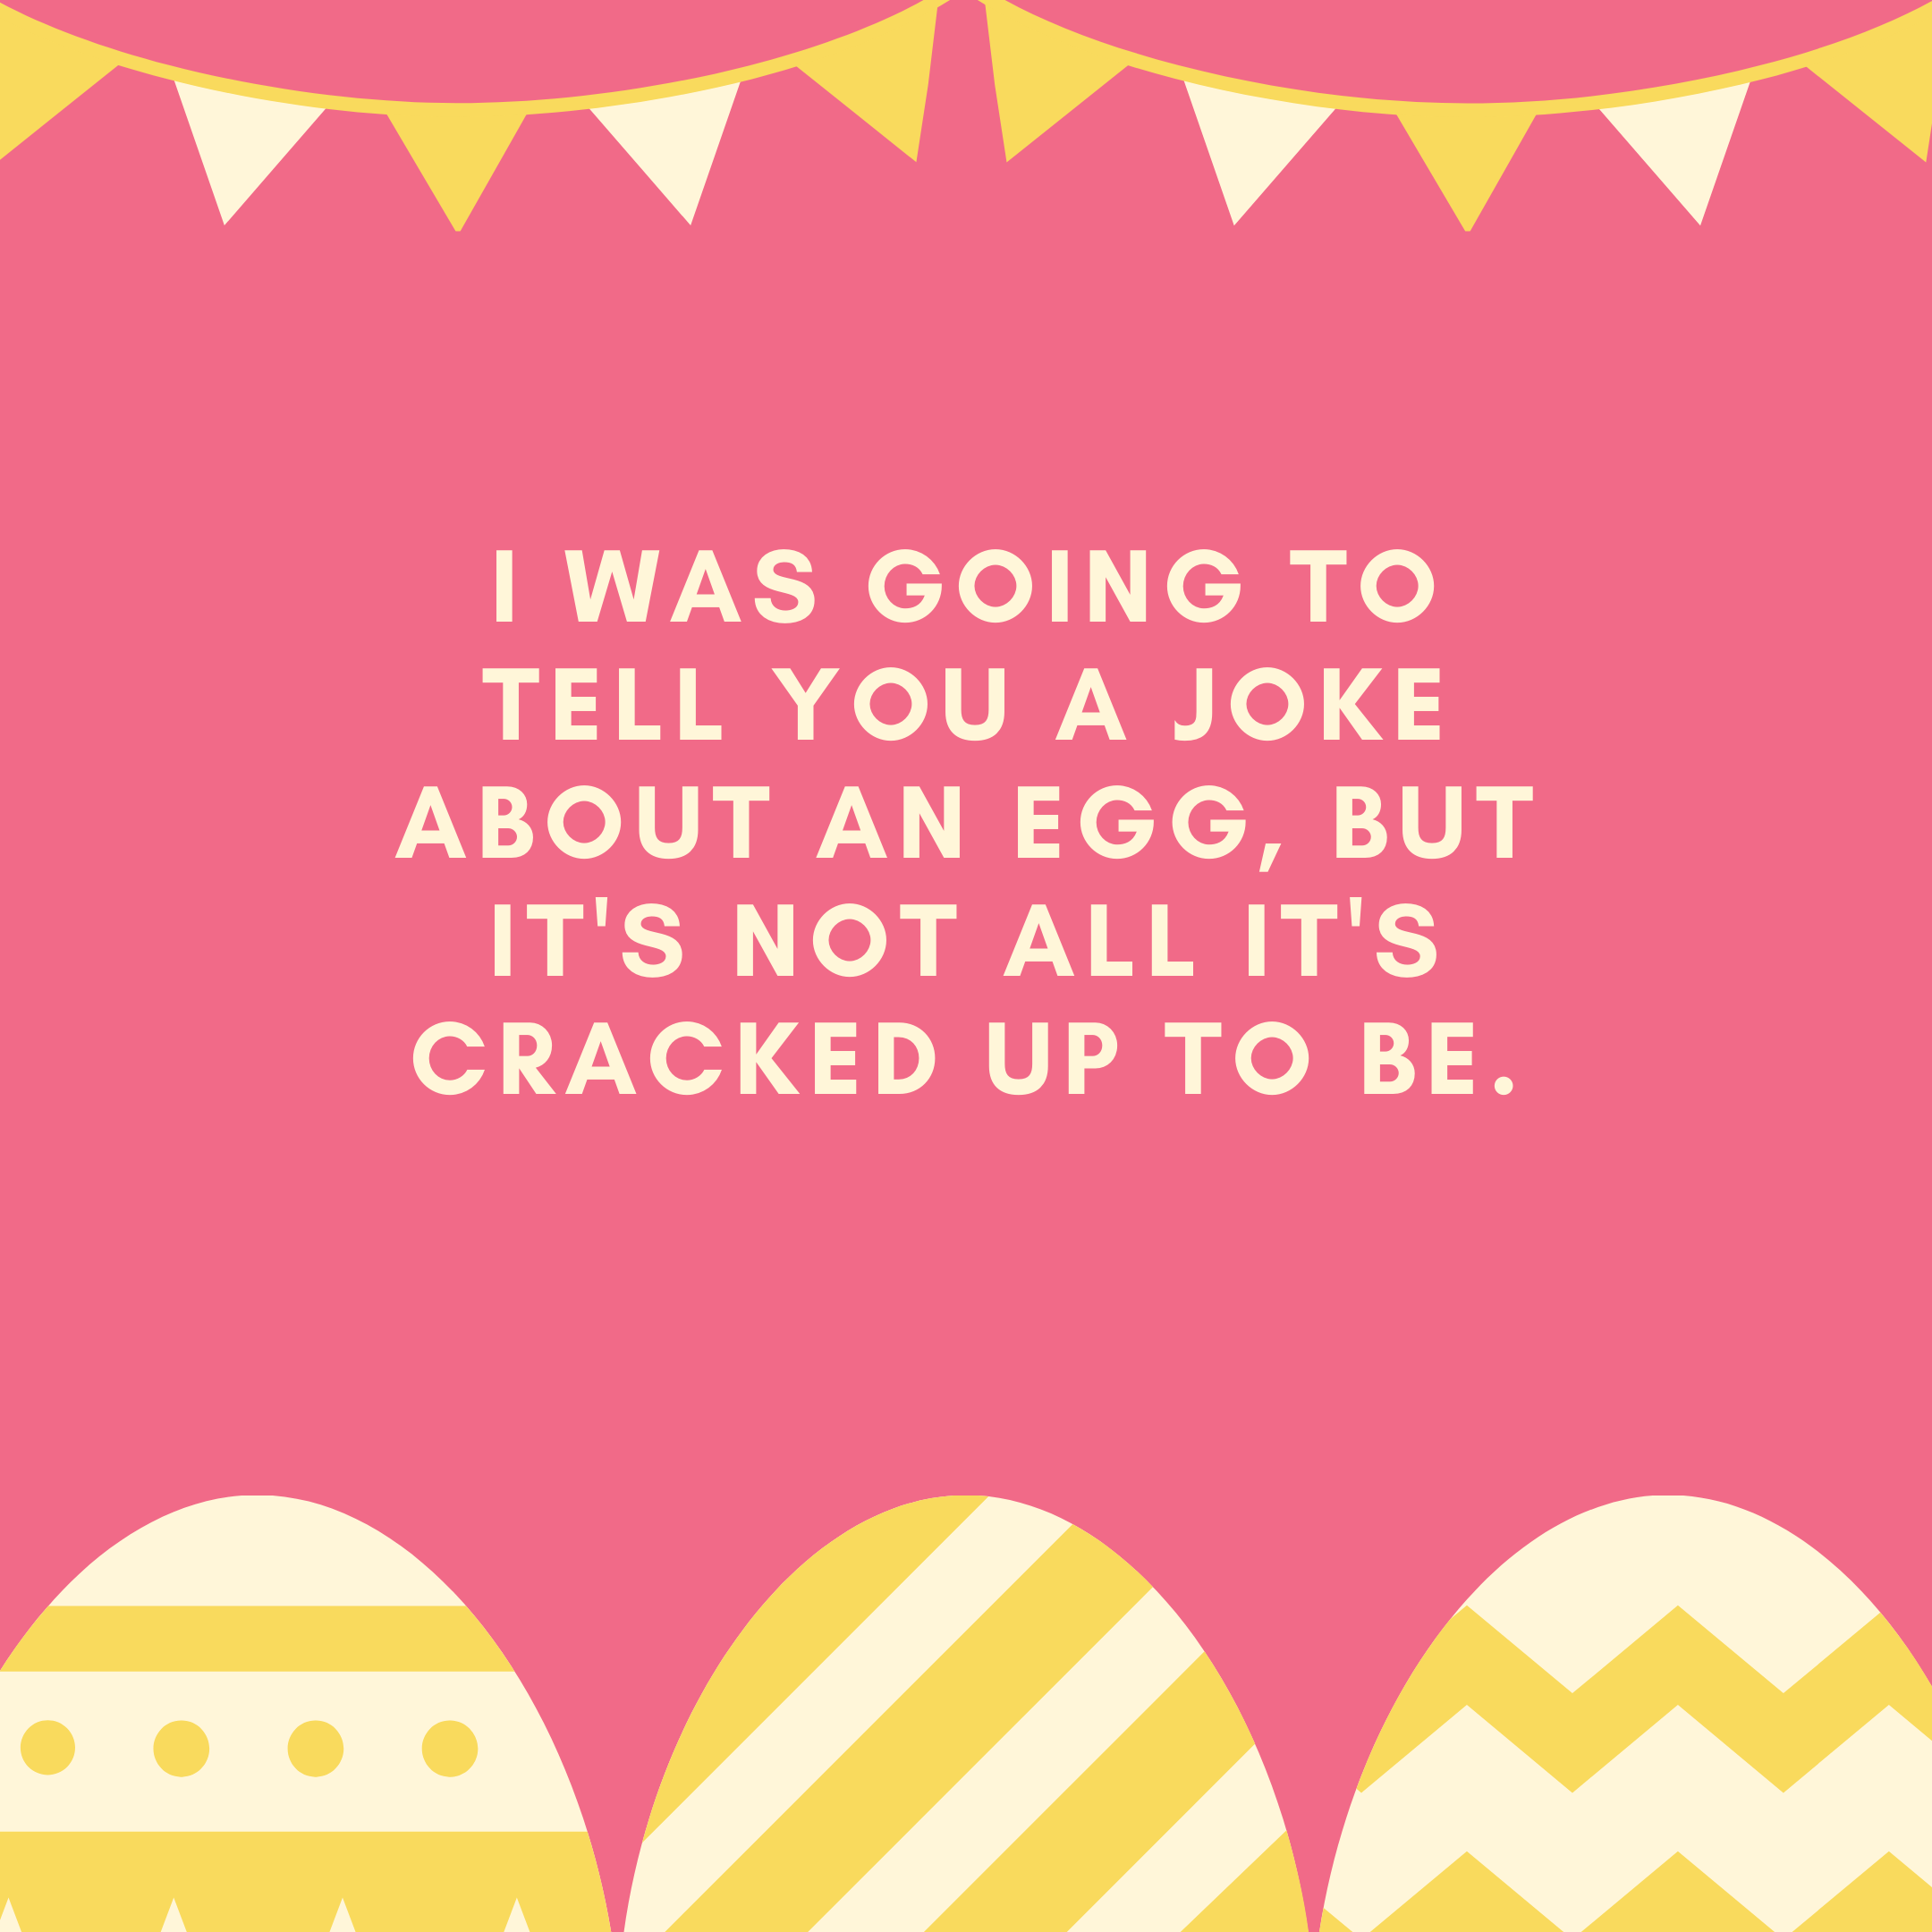 I was going to tell you a joke about an egg, but it's not all it's cracked up to be.